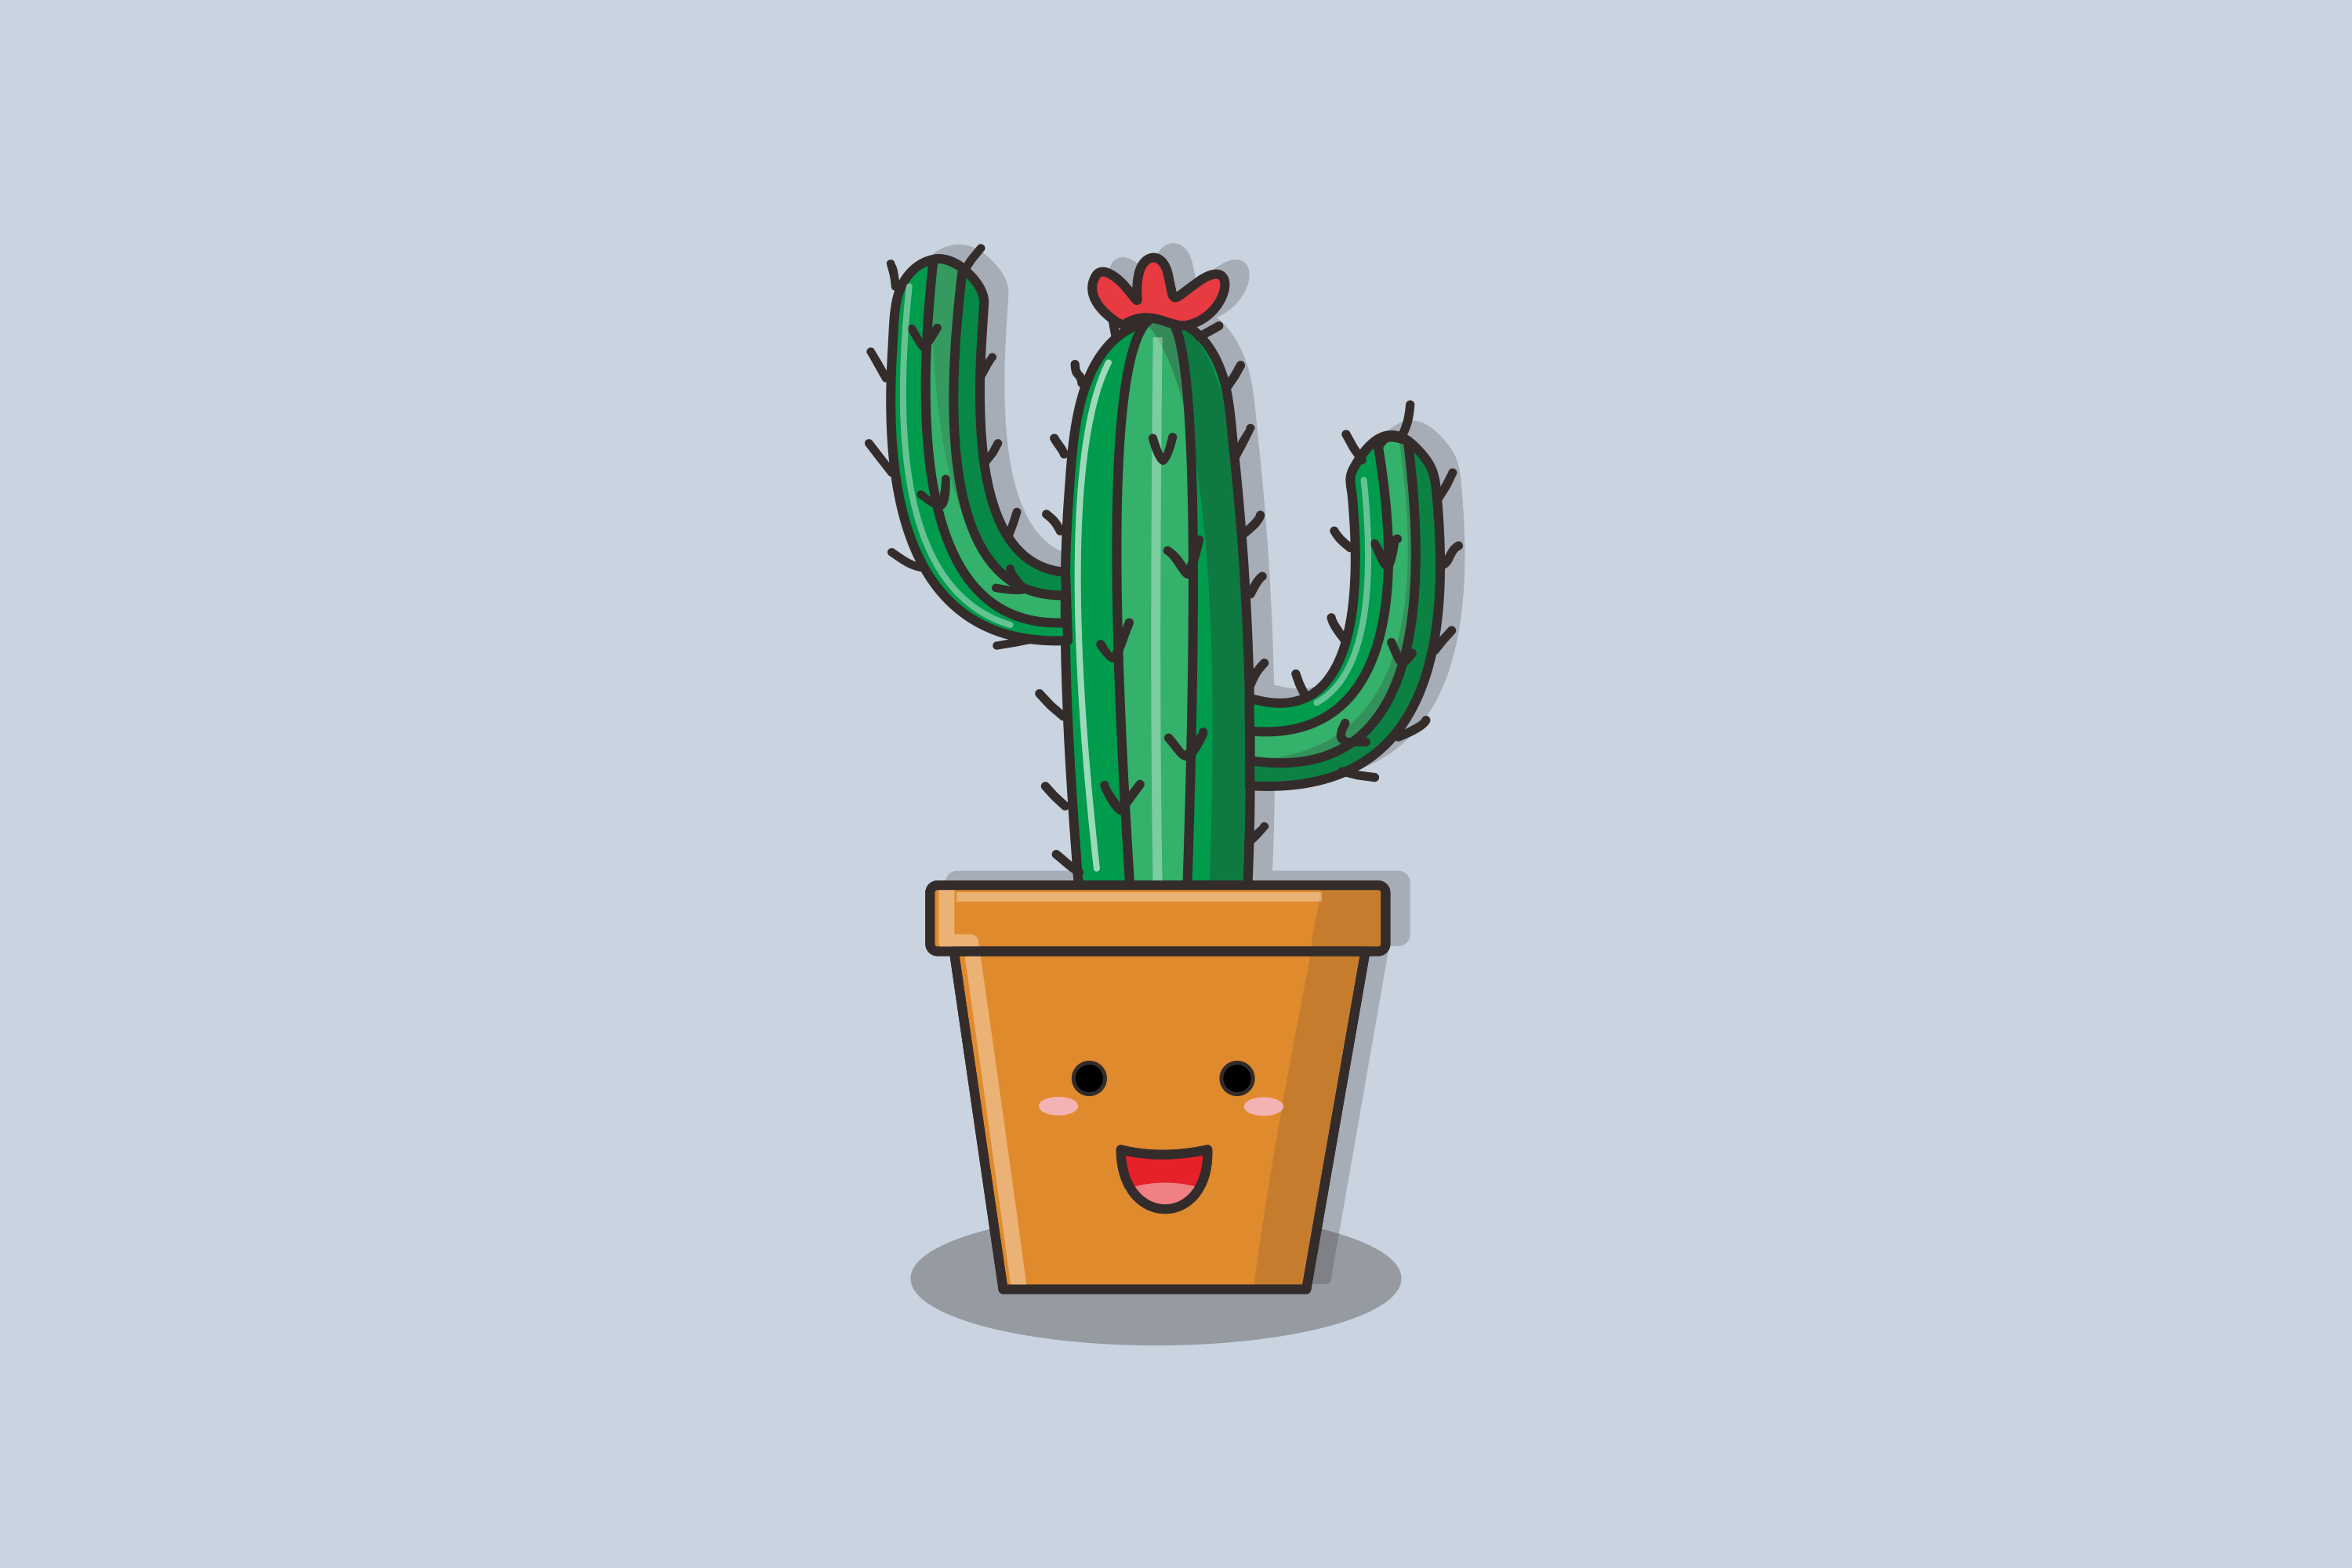 Download Free Cactus Vector Illustration Graphic By Nuraisyahamalia1729 Creative Fabrica for Cricut Explore, Silhouette and other cutting machines.